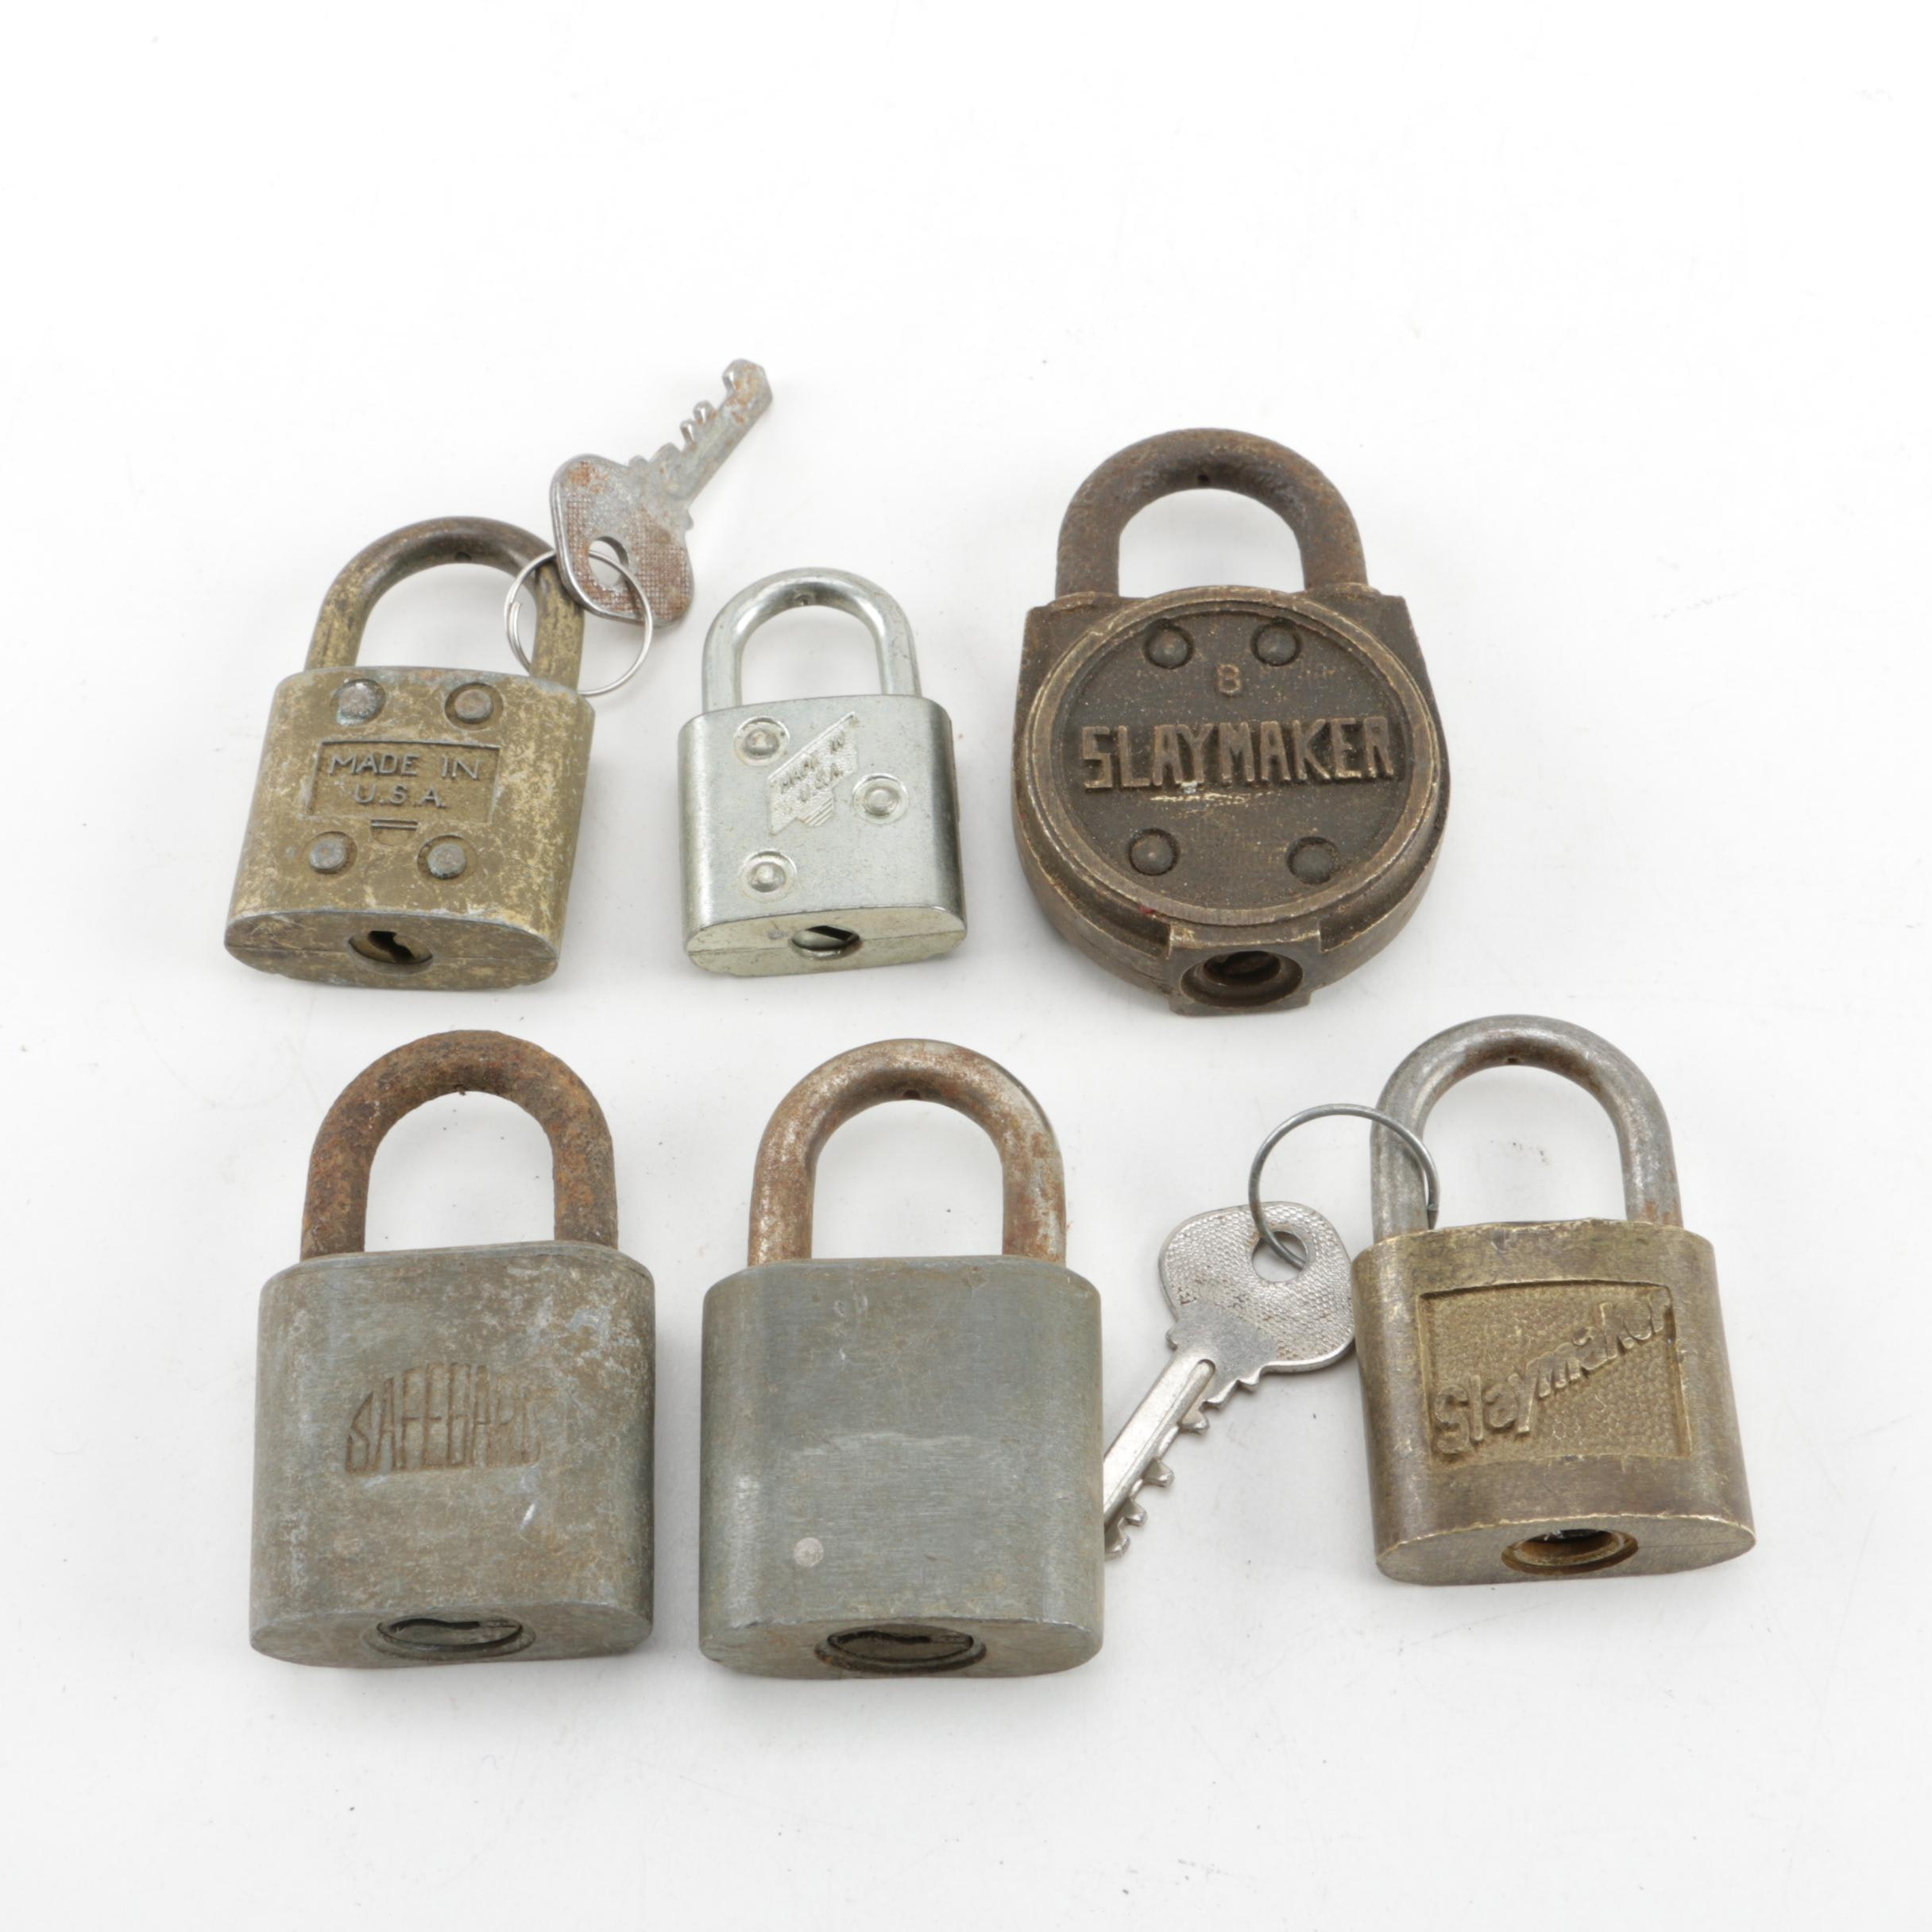 Vintage Padlocks Including Slaymaker